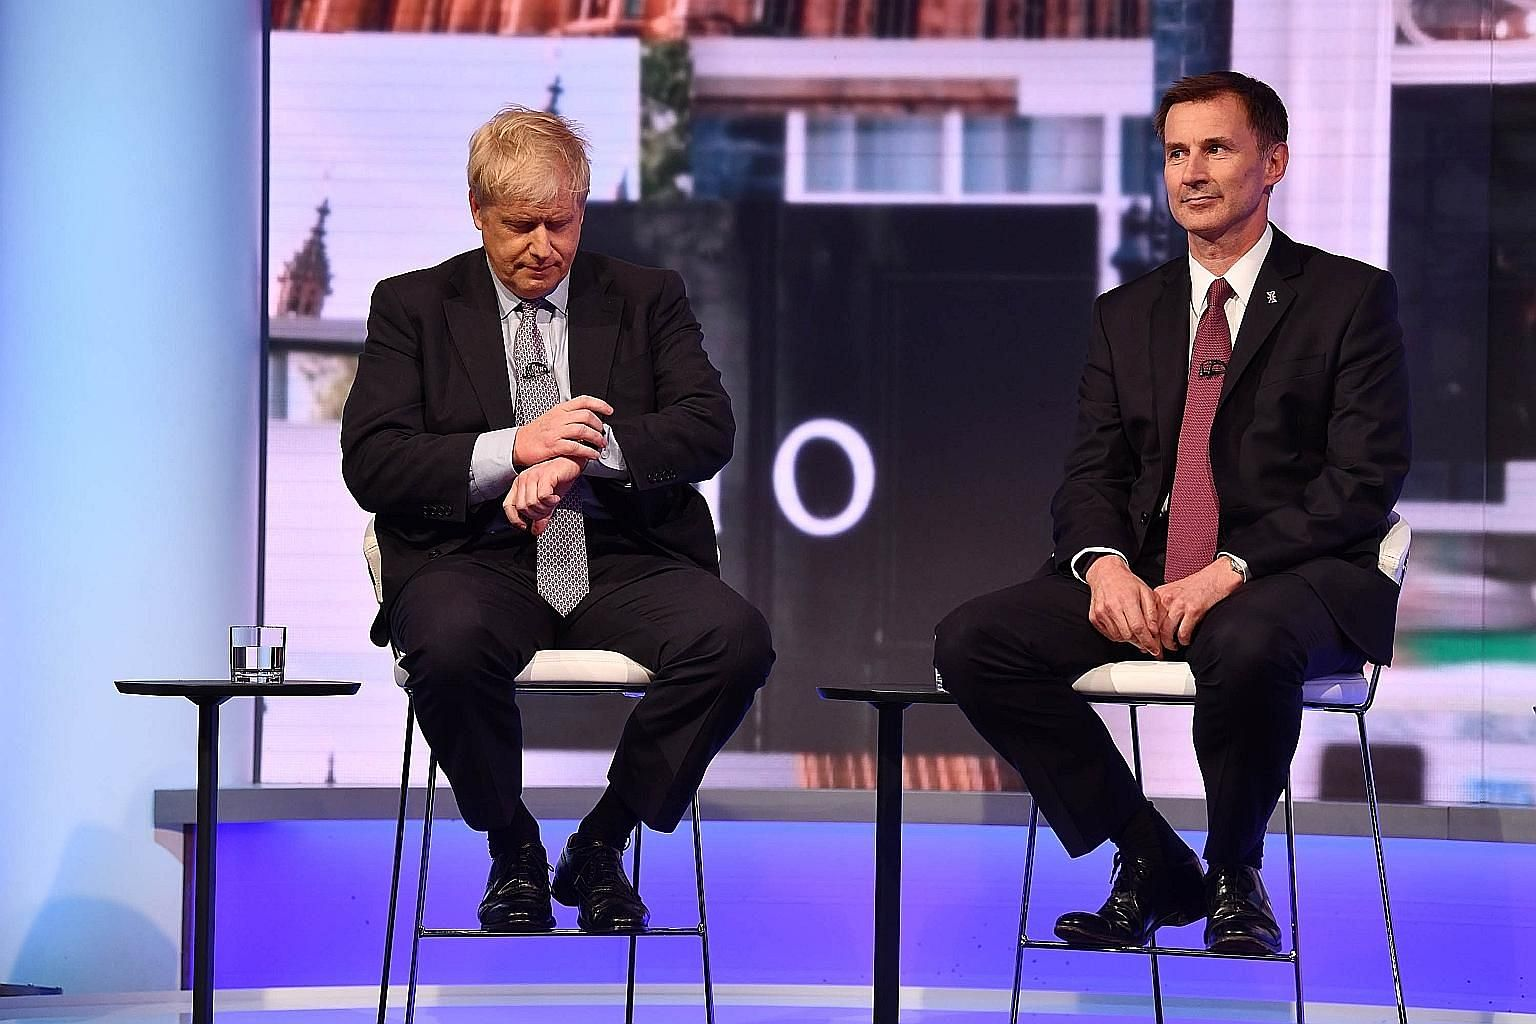 Mr Boris Johnson (left) and Mr Jeremy Hunt in a candid moment during a BBC television leadership debate in London on Tuesday. The two angling to be Britain's next leader have vowed to renegotiate the Brexit deal with the EU and get a better one befor